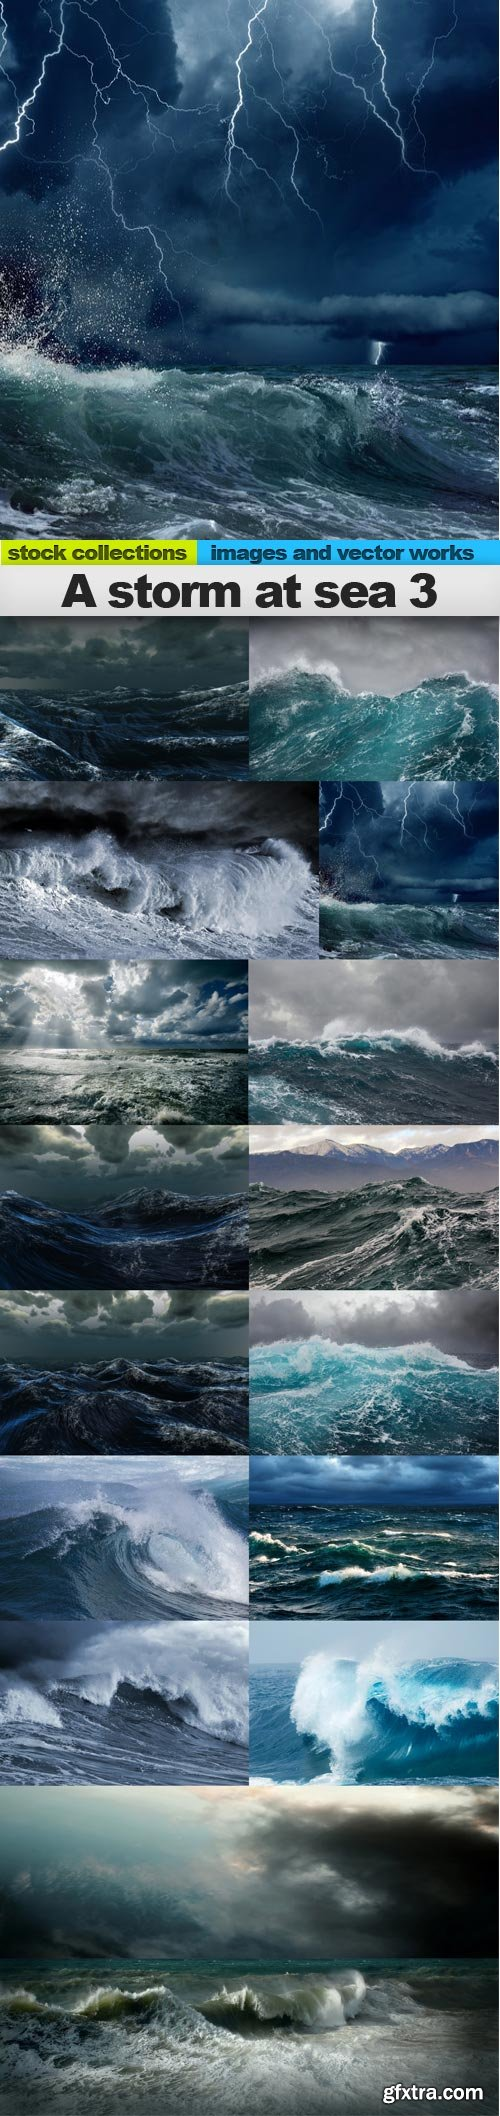 A storm at sea 3, 15 x UHQ JPEG